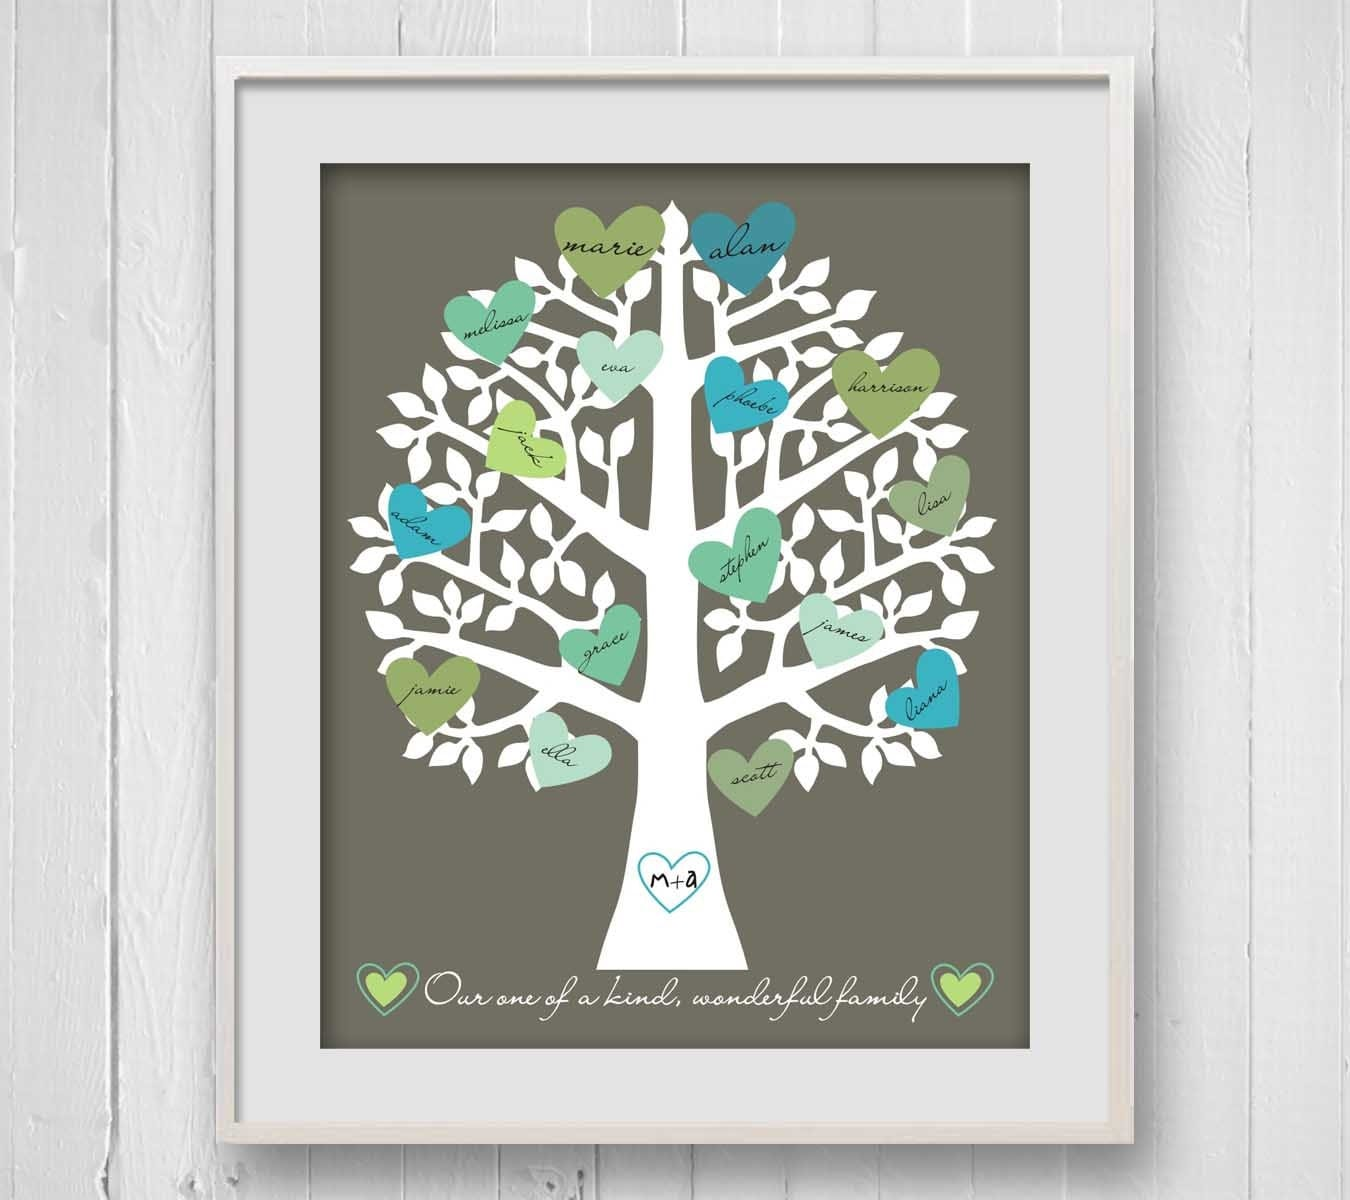 Family Tree Print Retro Heart Typography by SoakStudio on Etsy